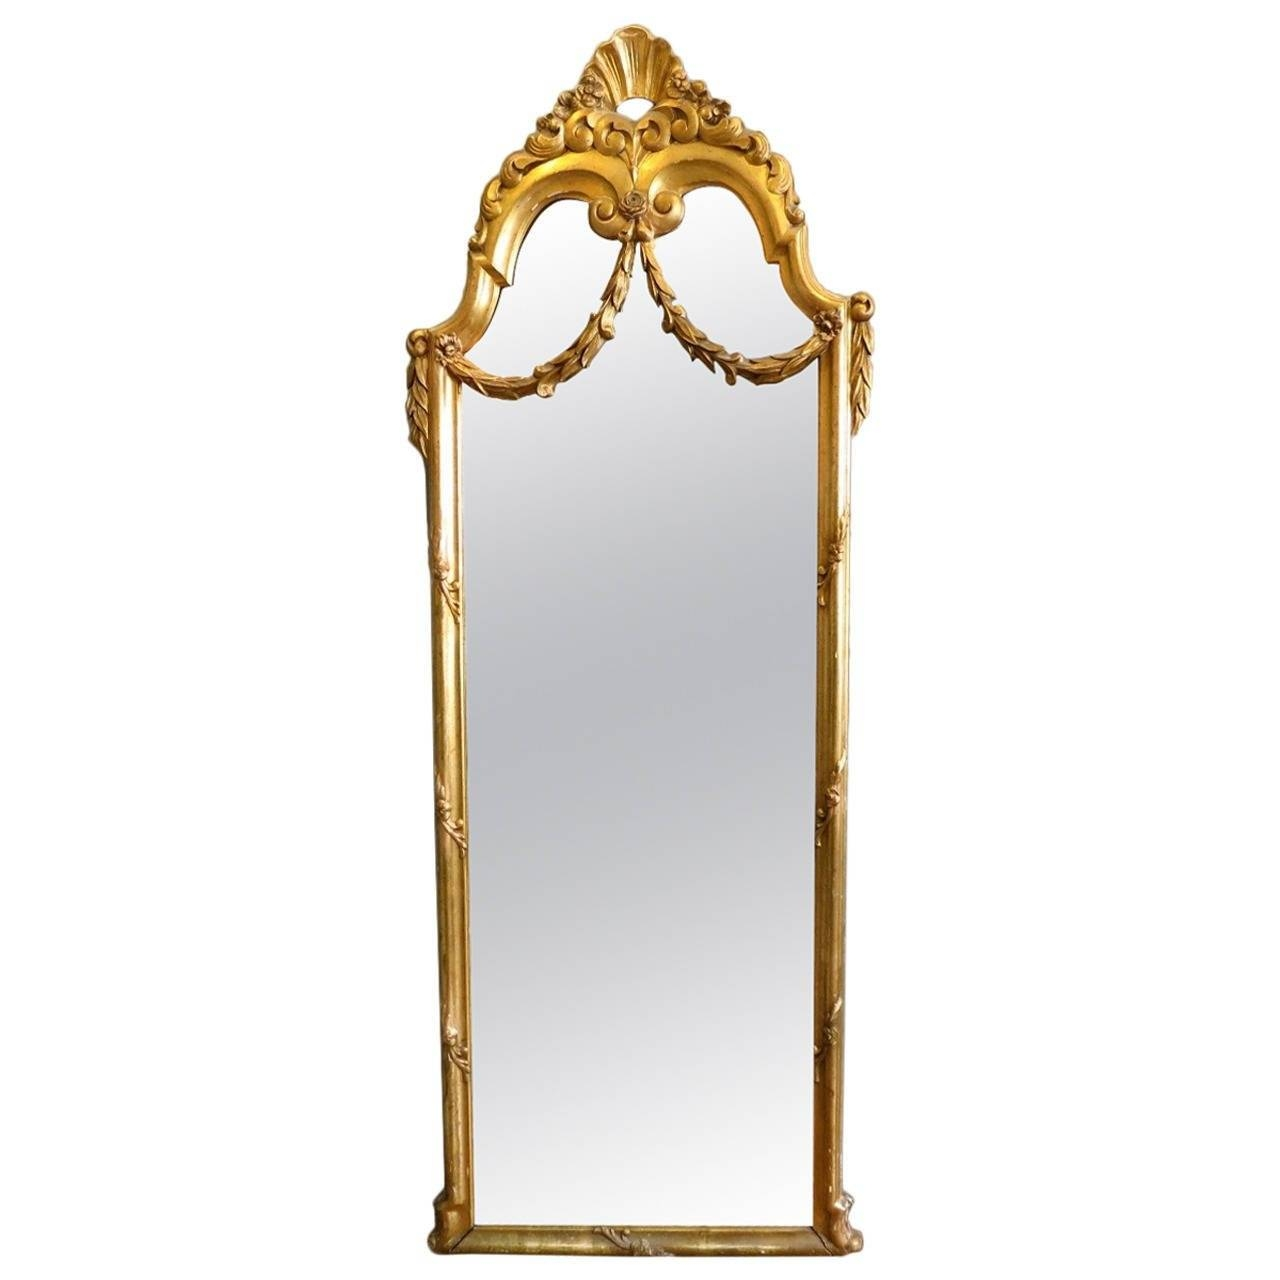 Antique French Gold Gilt Floor Standing Mirror At 1Stdibs regarding Antique Mirrors London (Image 8 of 25)